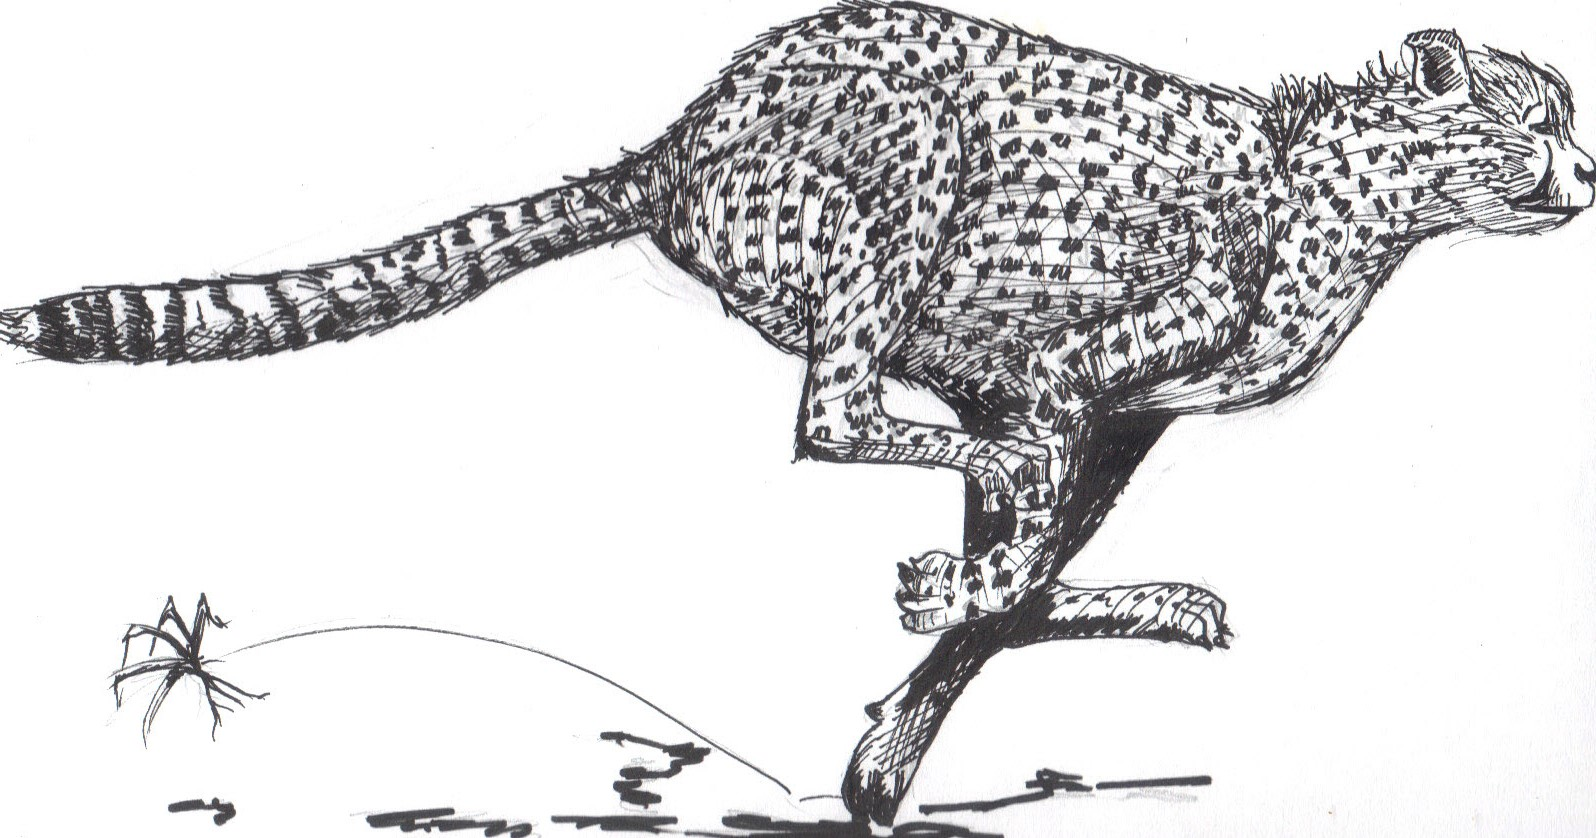 Cheetah - Ink